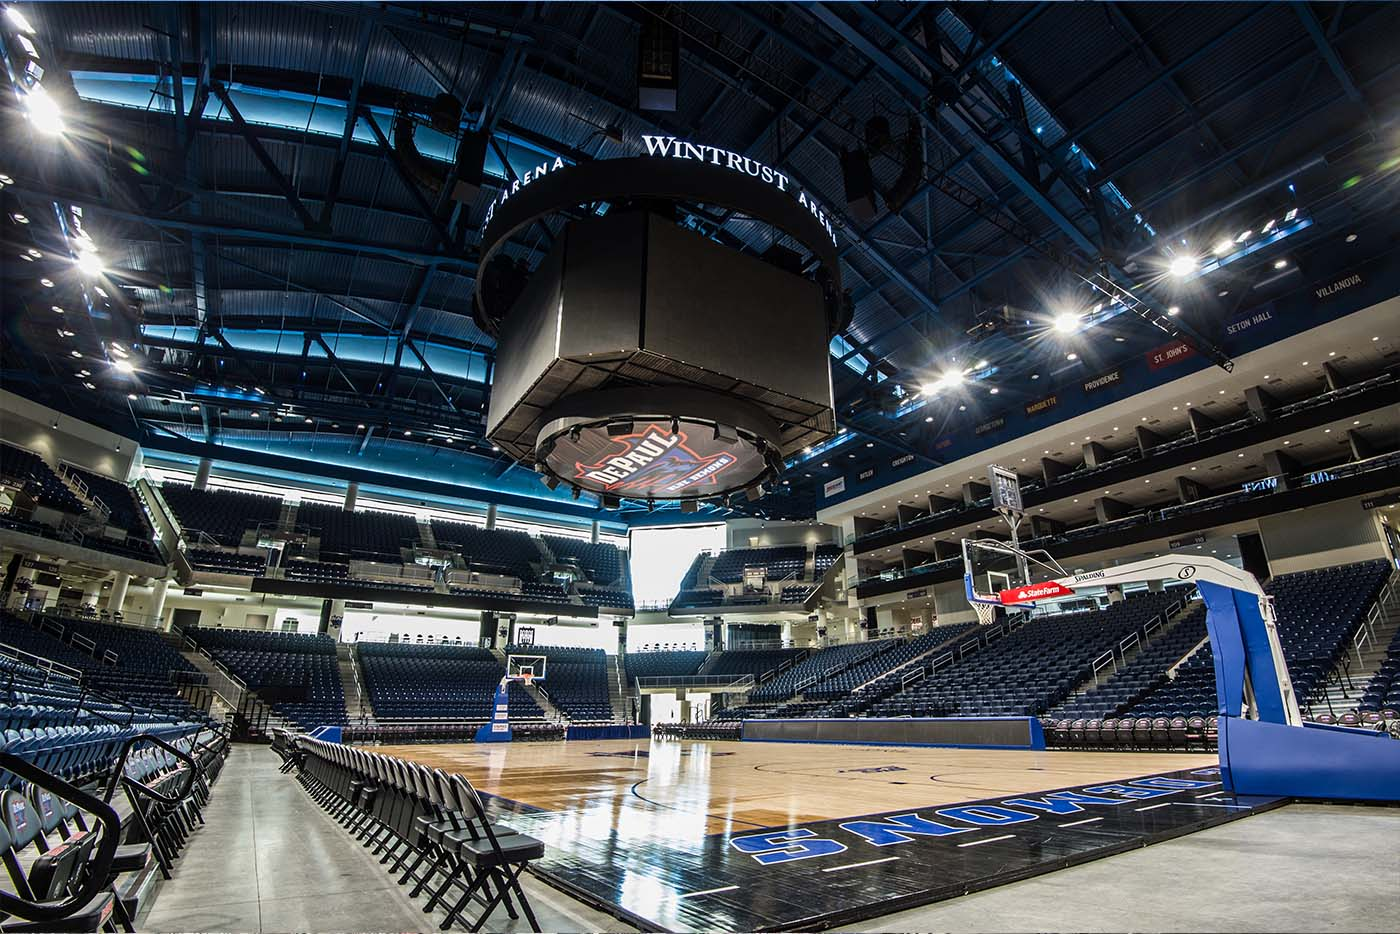 The Basketball court at Wintrust Arena in Chicago